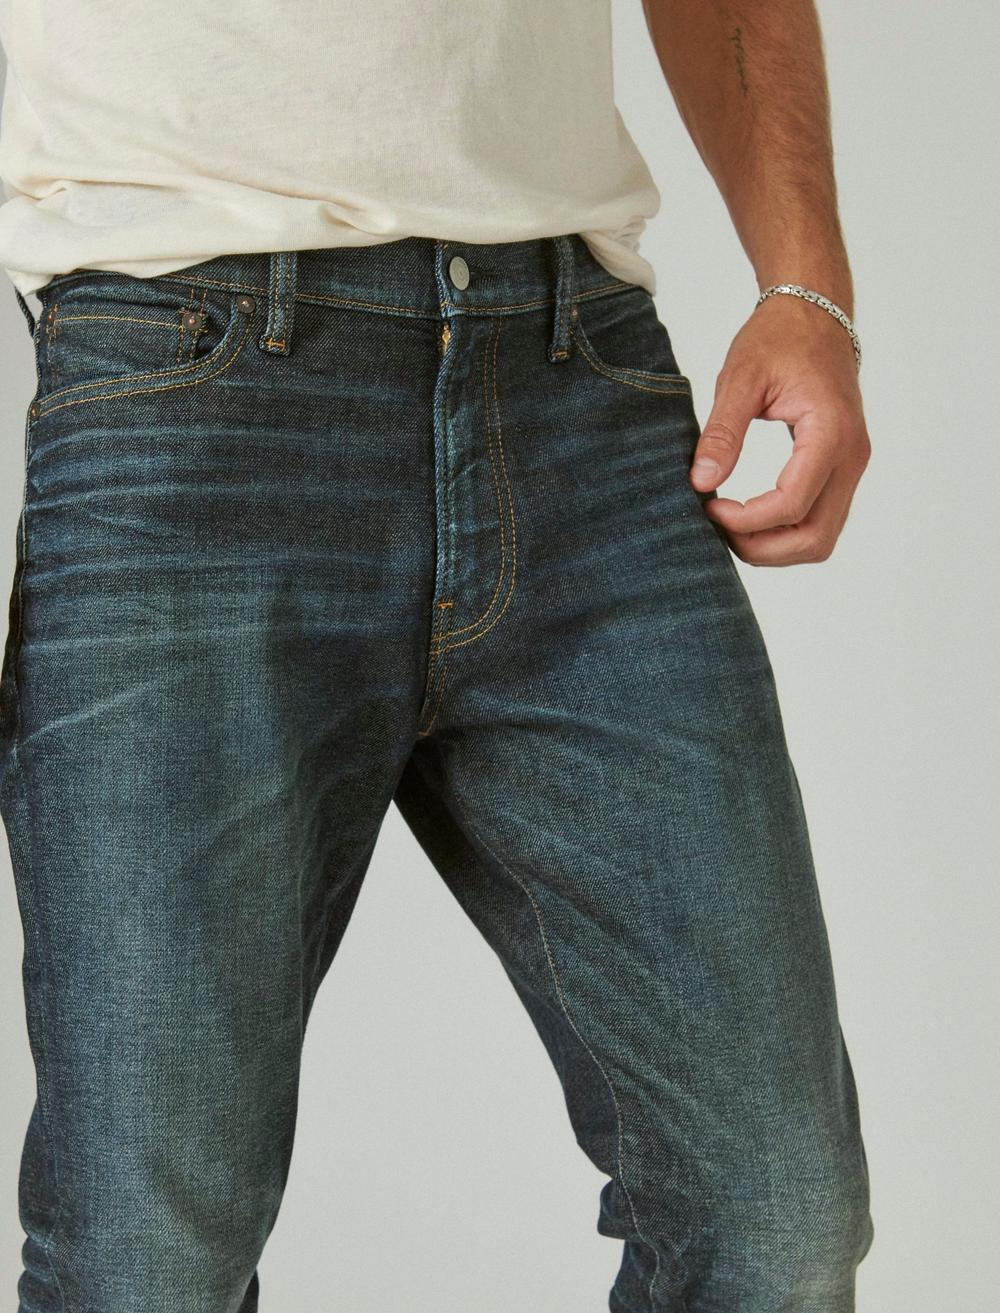 411 ATHLETIC TAPER ADVANCED STRETCH JEAN, image 7